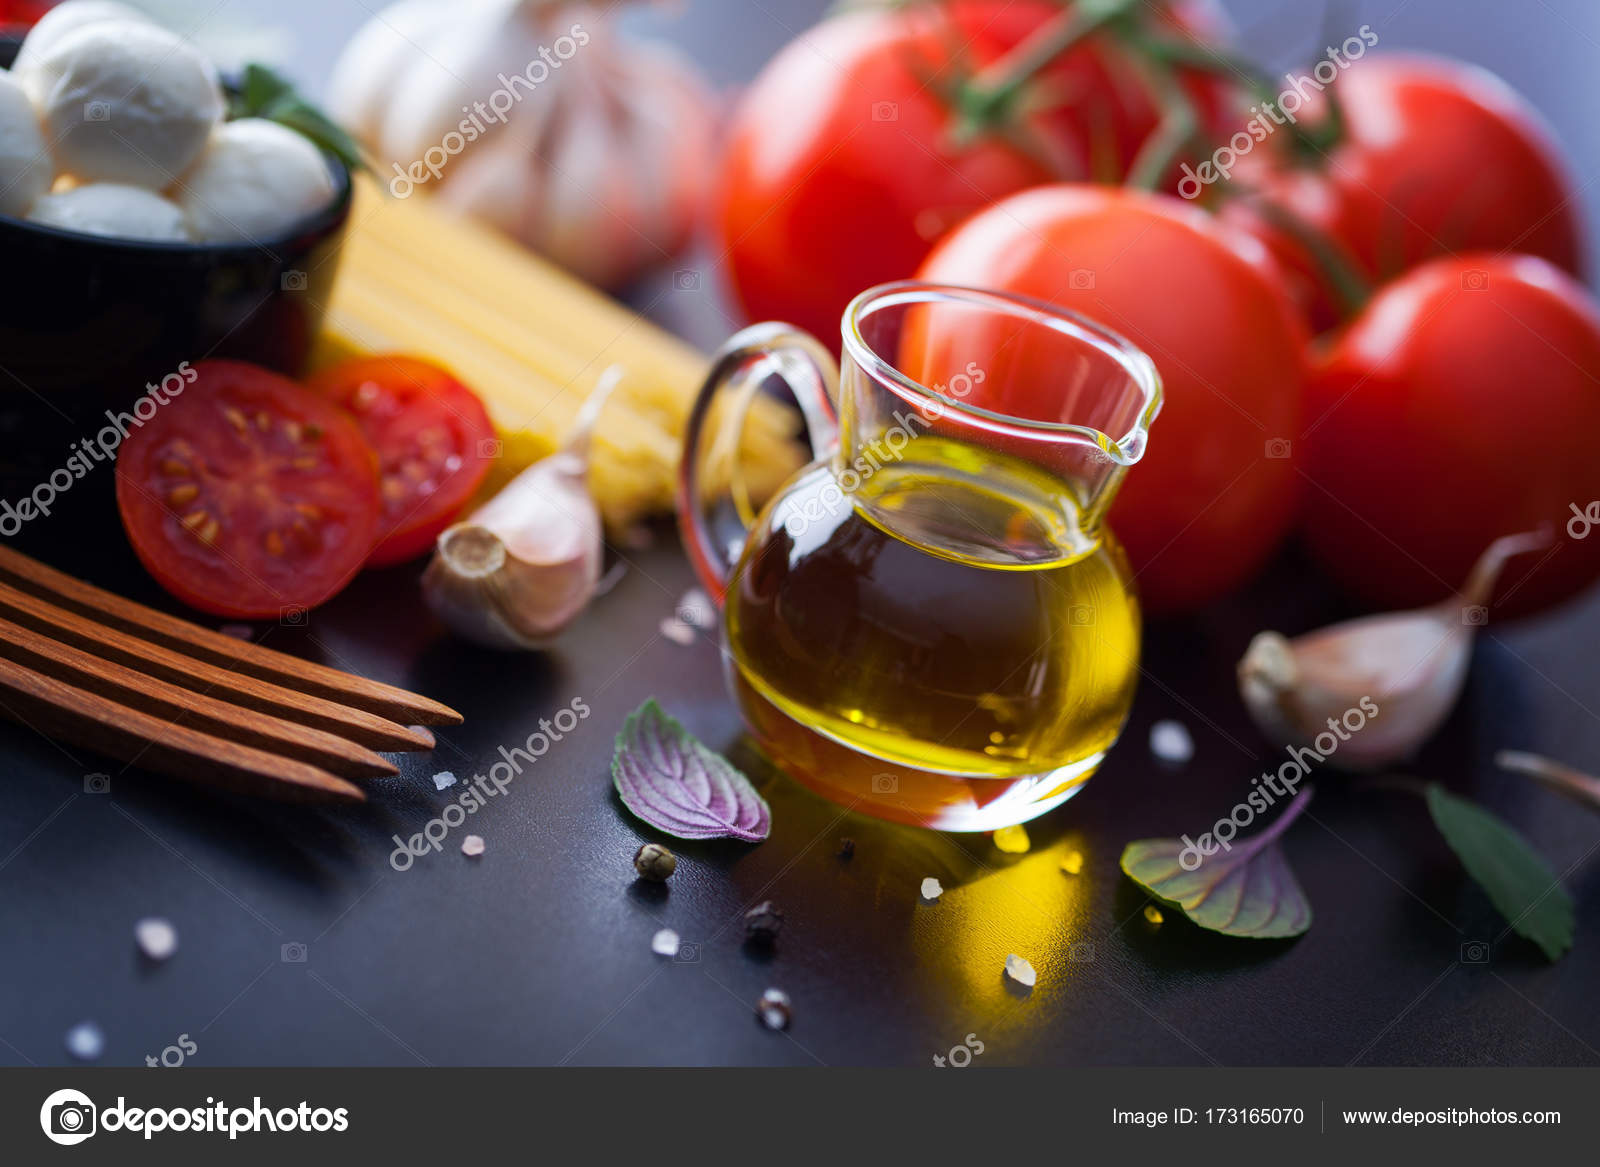 Cuisines Vial Vial With Olive Oil Stock Photo Matka Wariatka 173165070